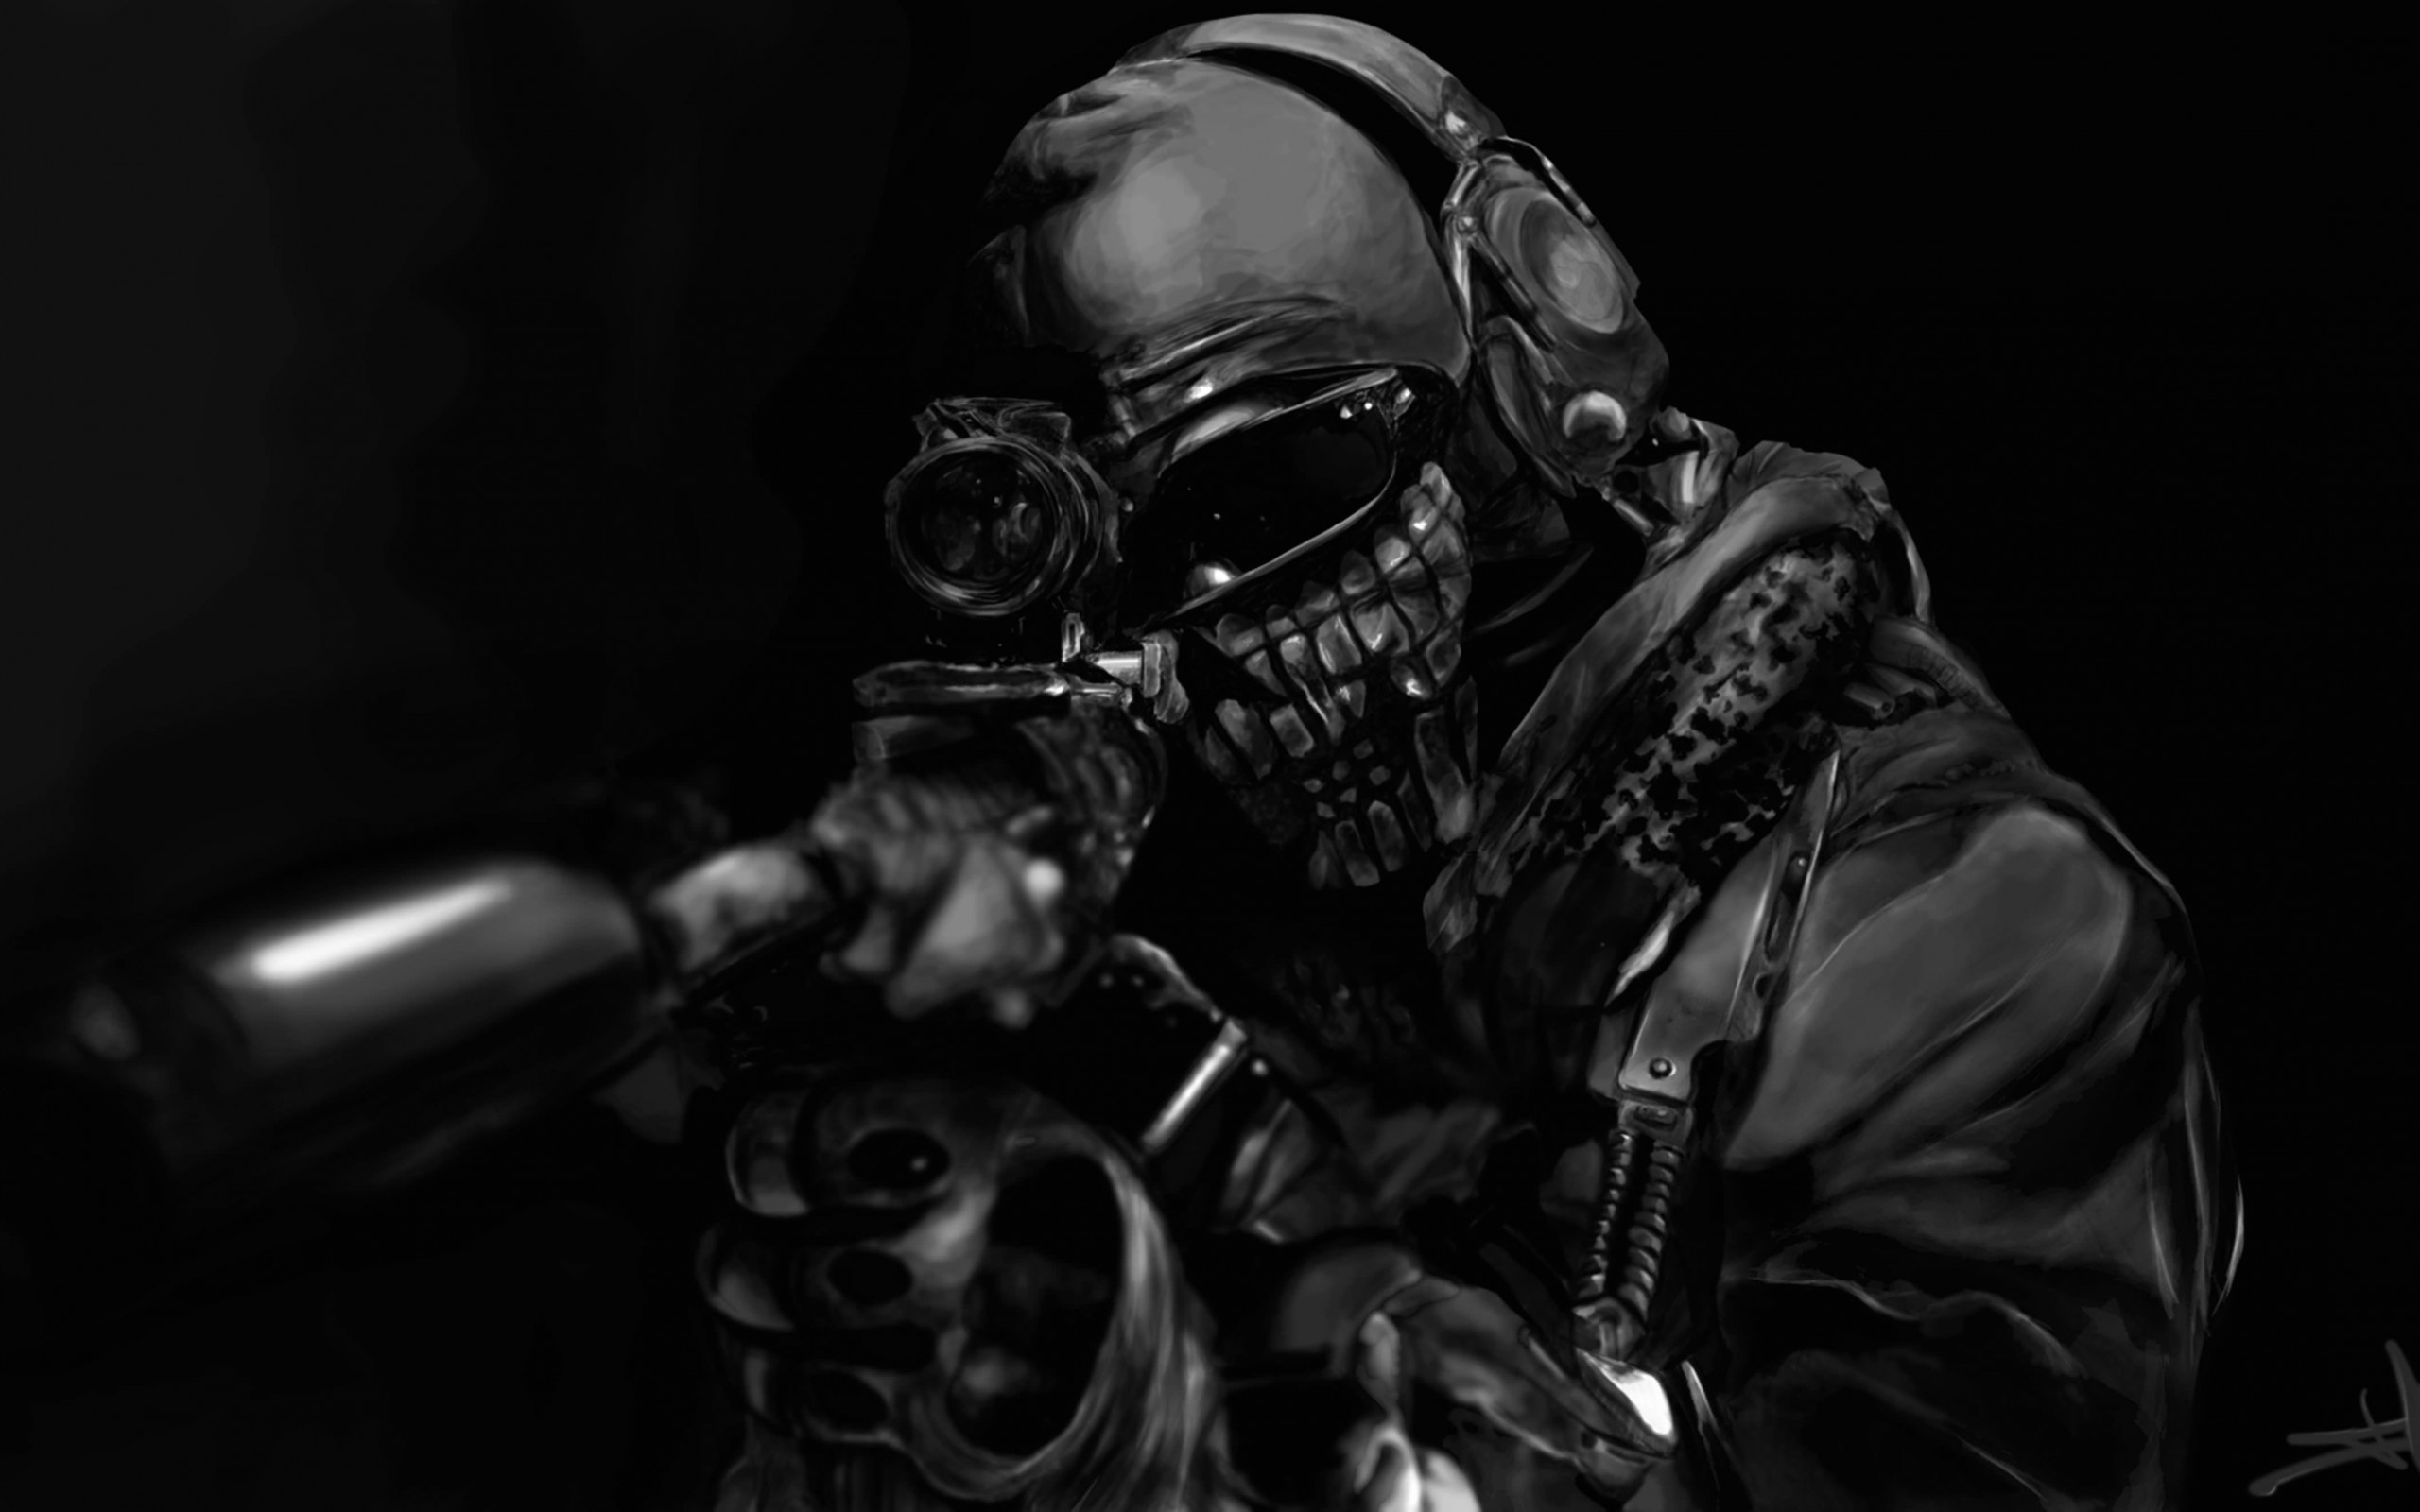 Call of Duty Ghost Masked Warrior Wallpaper for Desktop 2560x1600